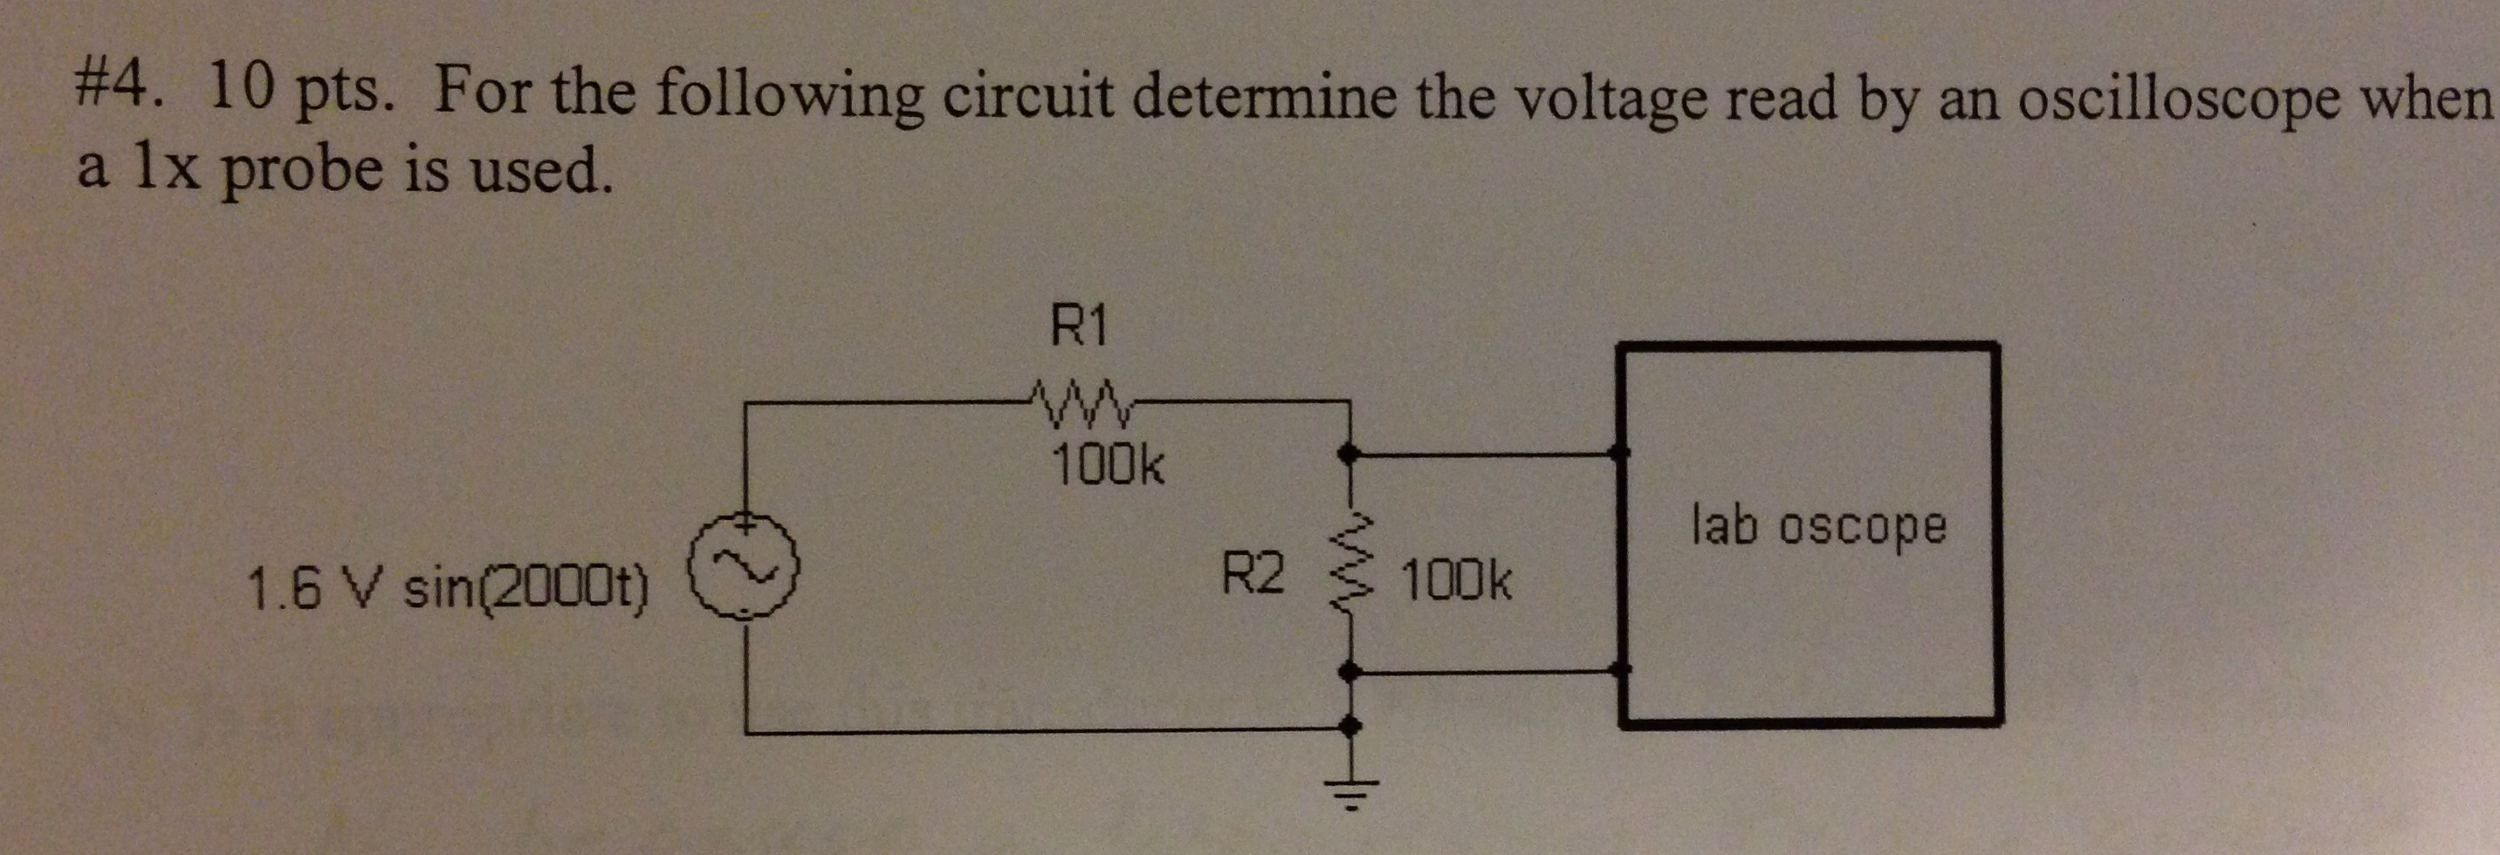 For the following circuit determine the voltage re